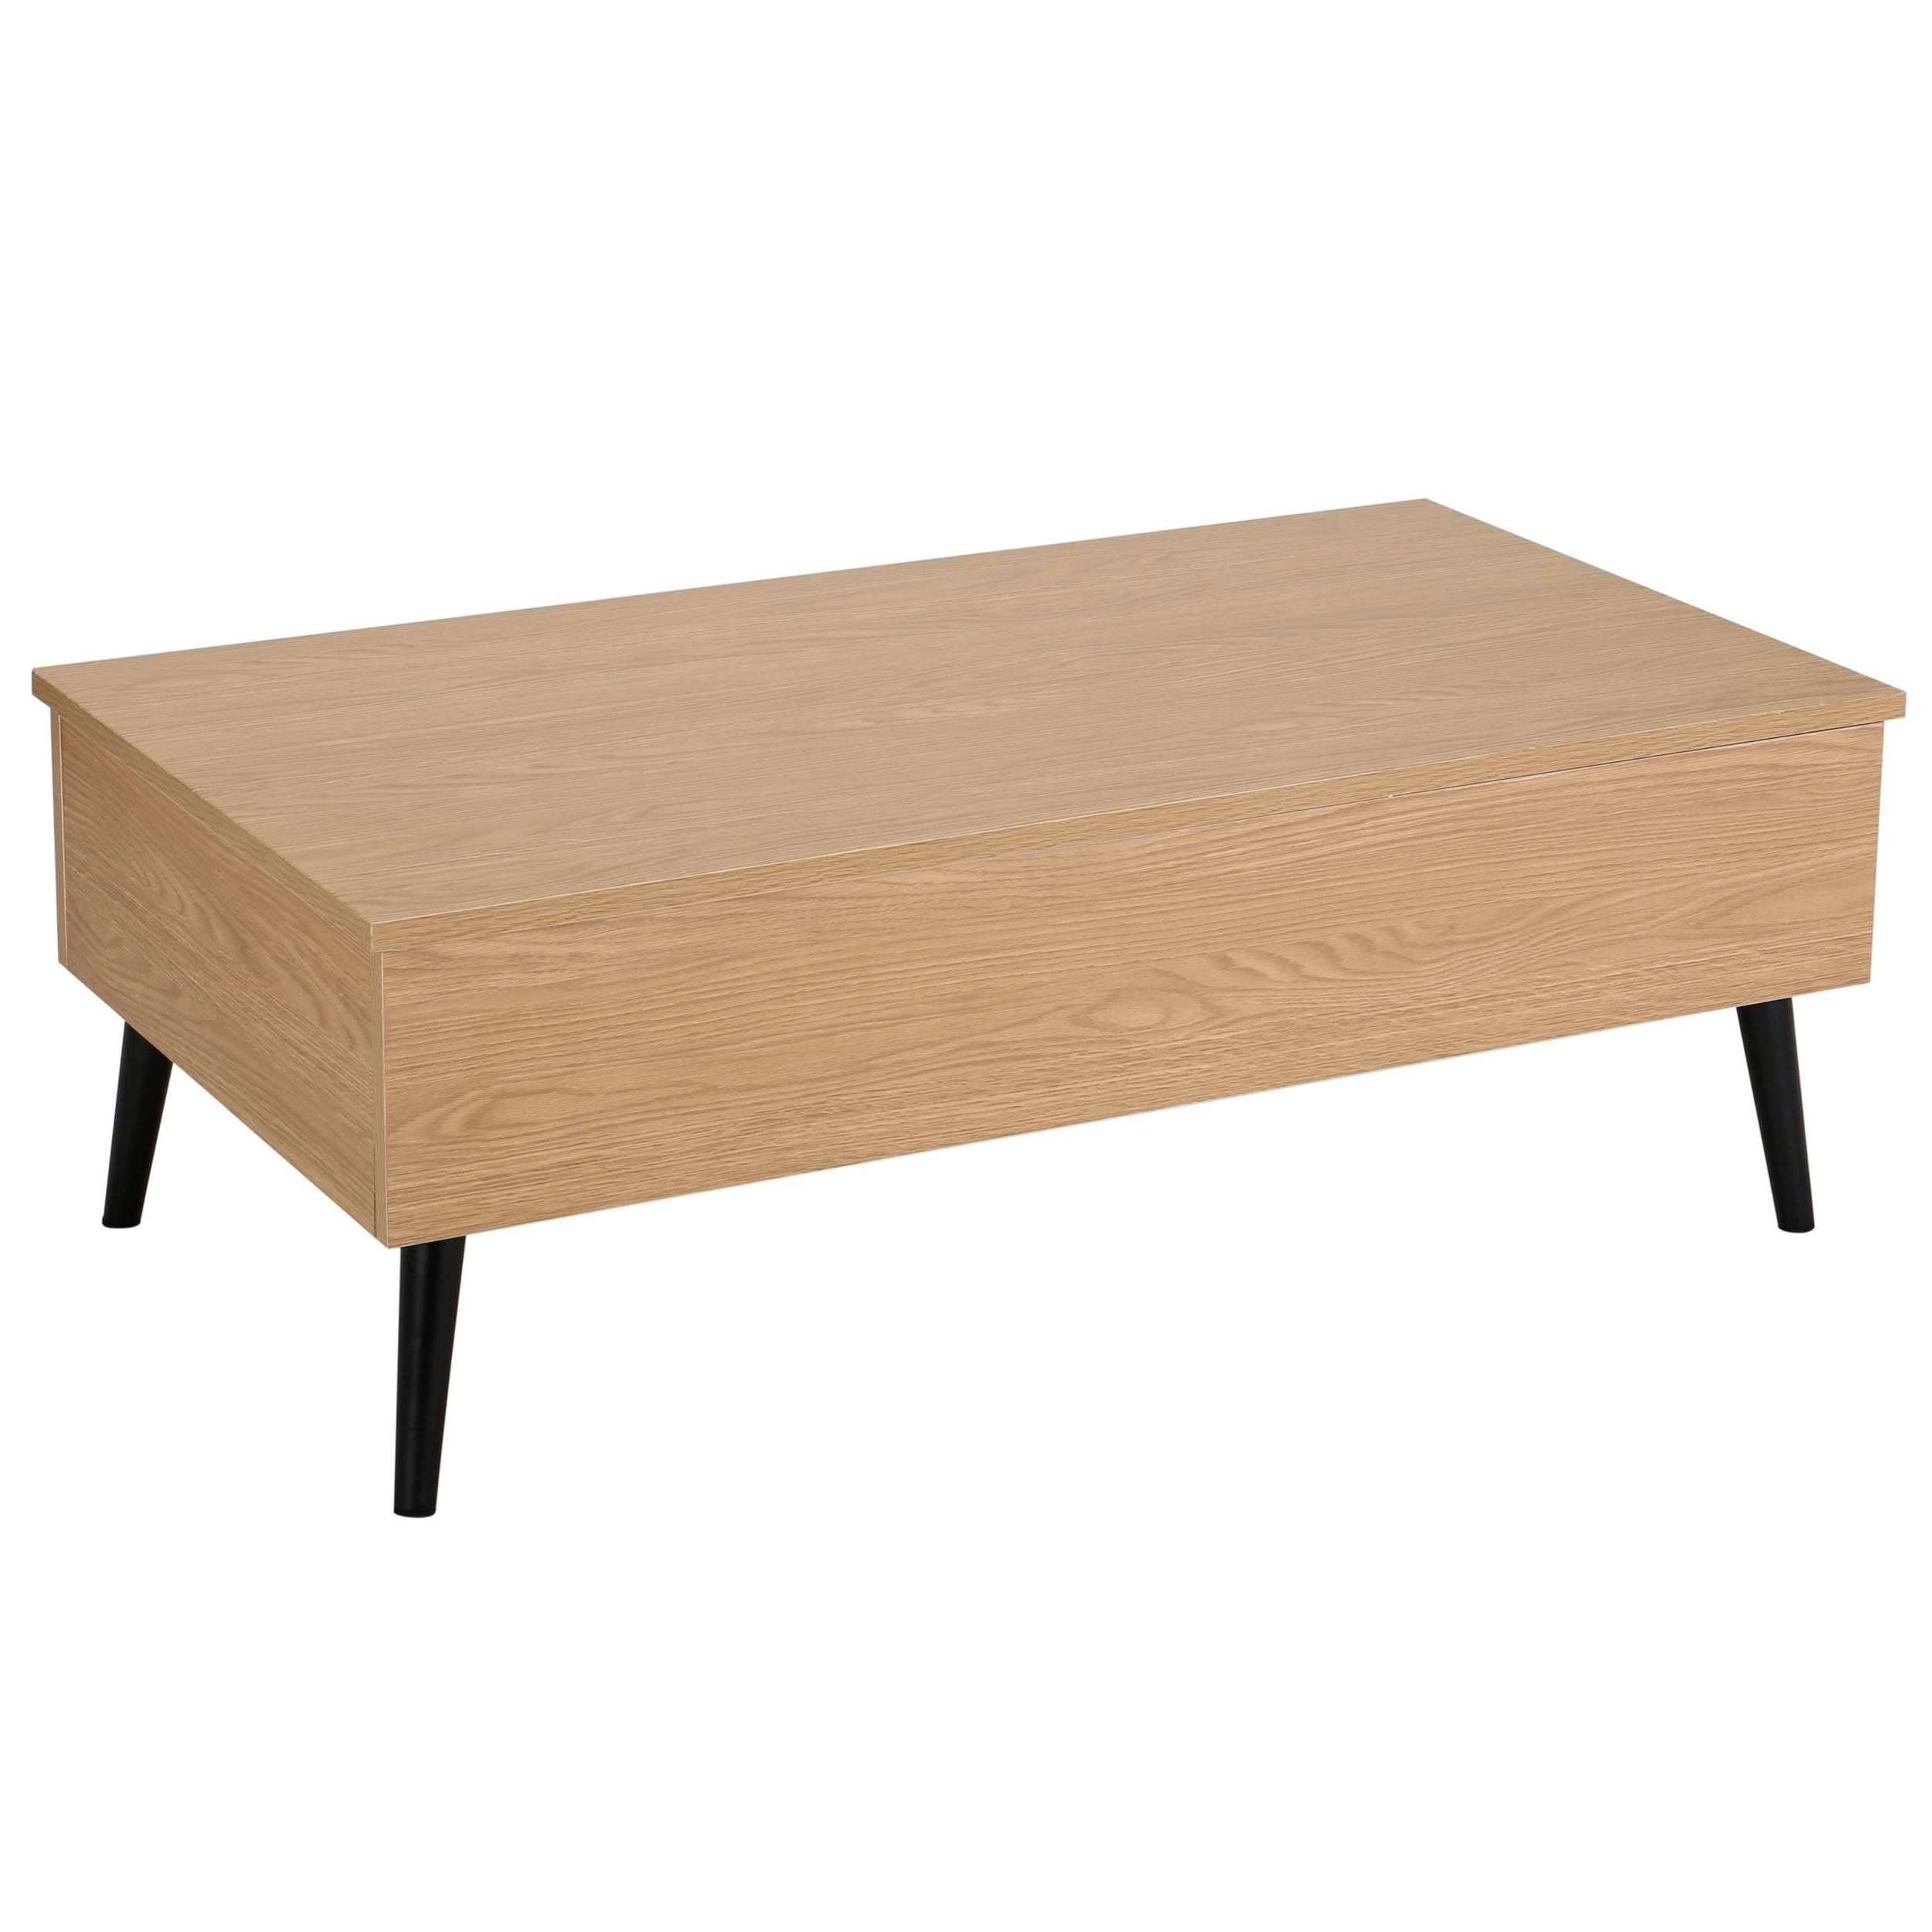 Elliot Wood Lift Top Storage Coffee Tablechristopher Knight Inside Trendy Wooden Storage Coffee Tables (View 6 of 20)